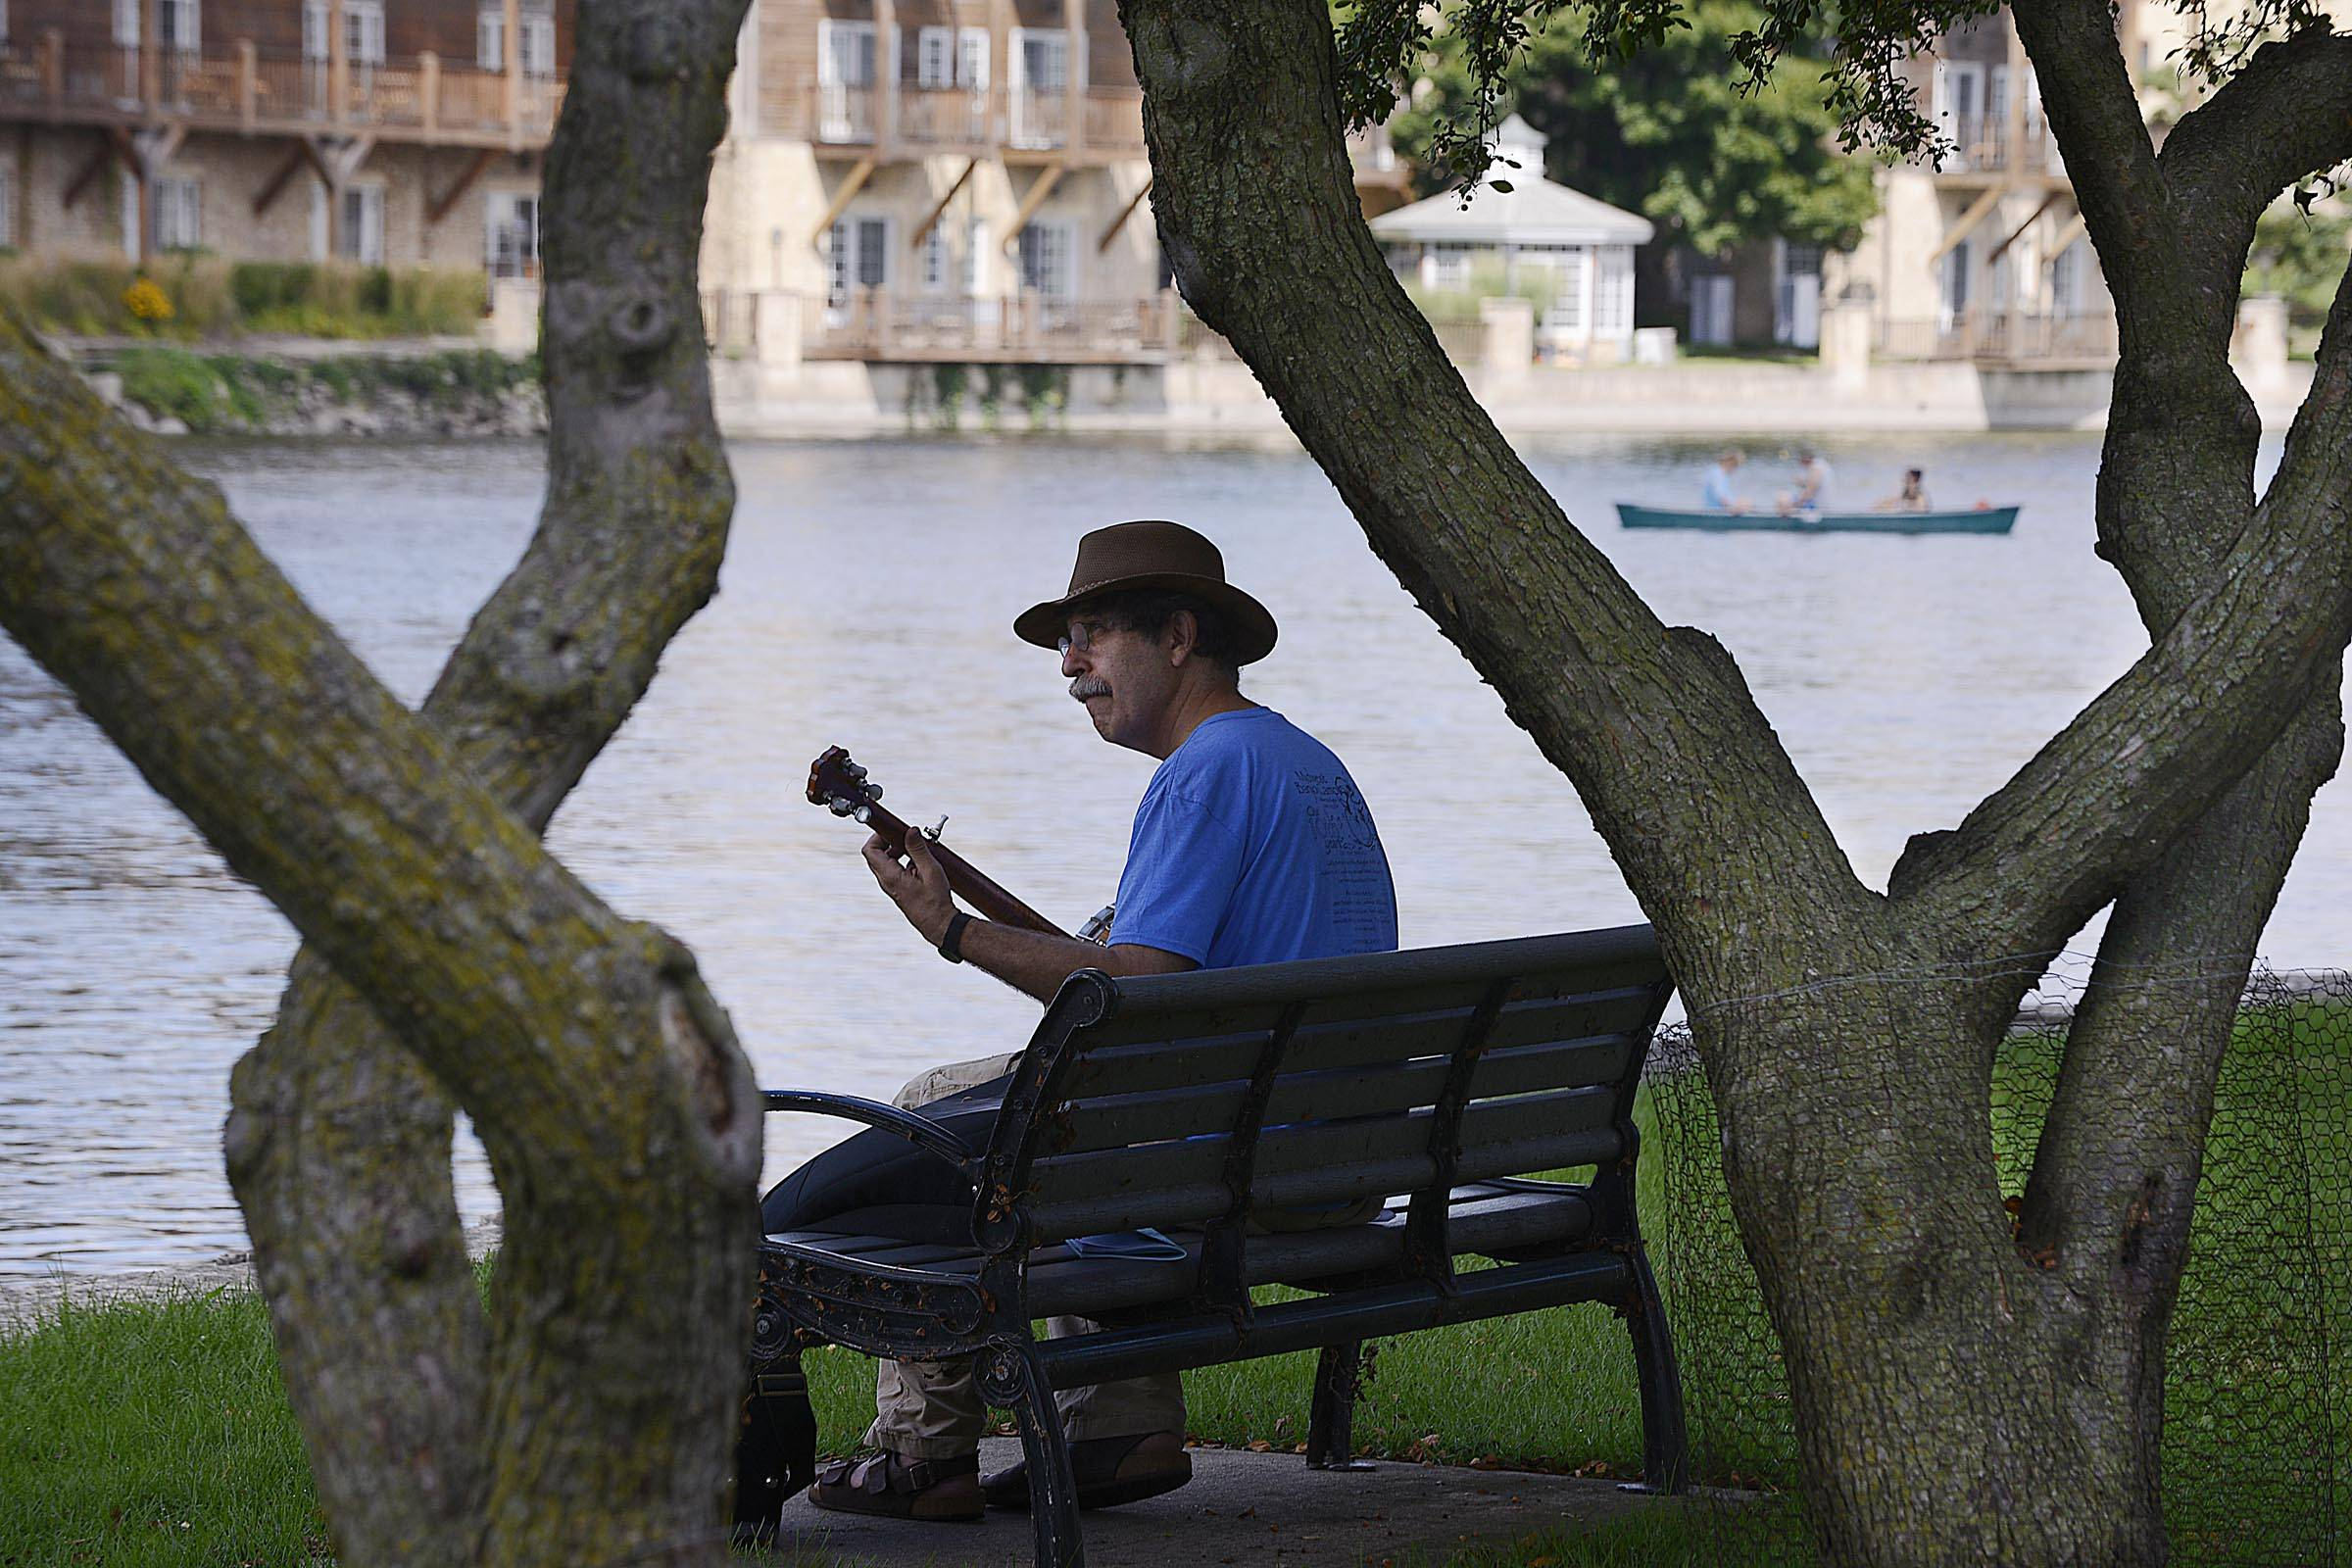 Ken Perlman, of Boston, plays his five-string banjo on the banks of the Fox River before perfuming for the crowd Sunday at the Fox Valley Folk Festival at Island Park in Geneva. The festival continues from 11 a.m. to 6 p.m. Monday.